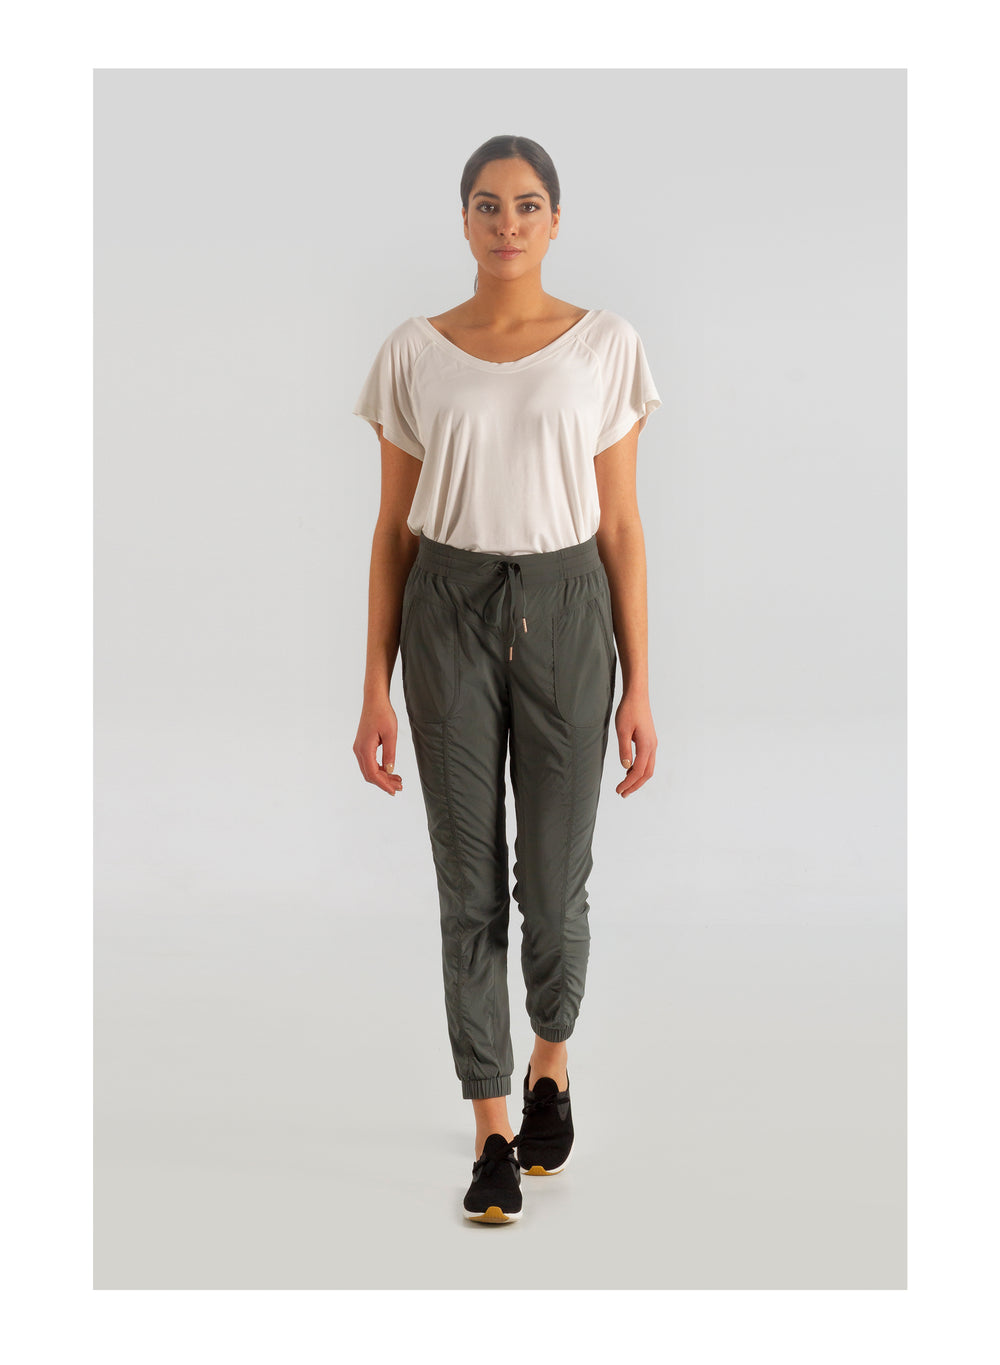 Indygena Maeto II Woven Stretch Pant - Women's